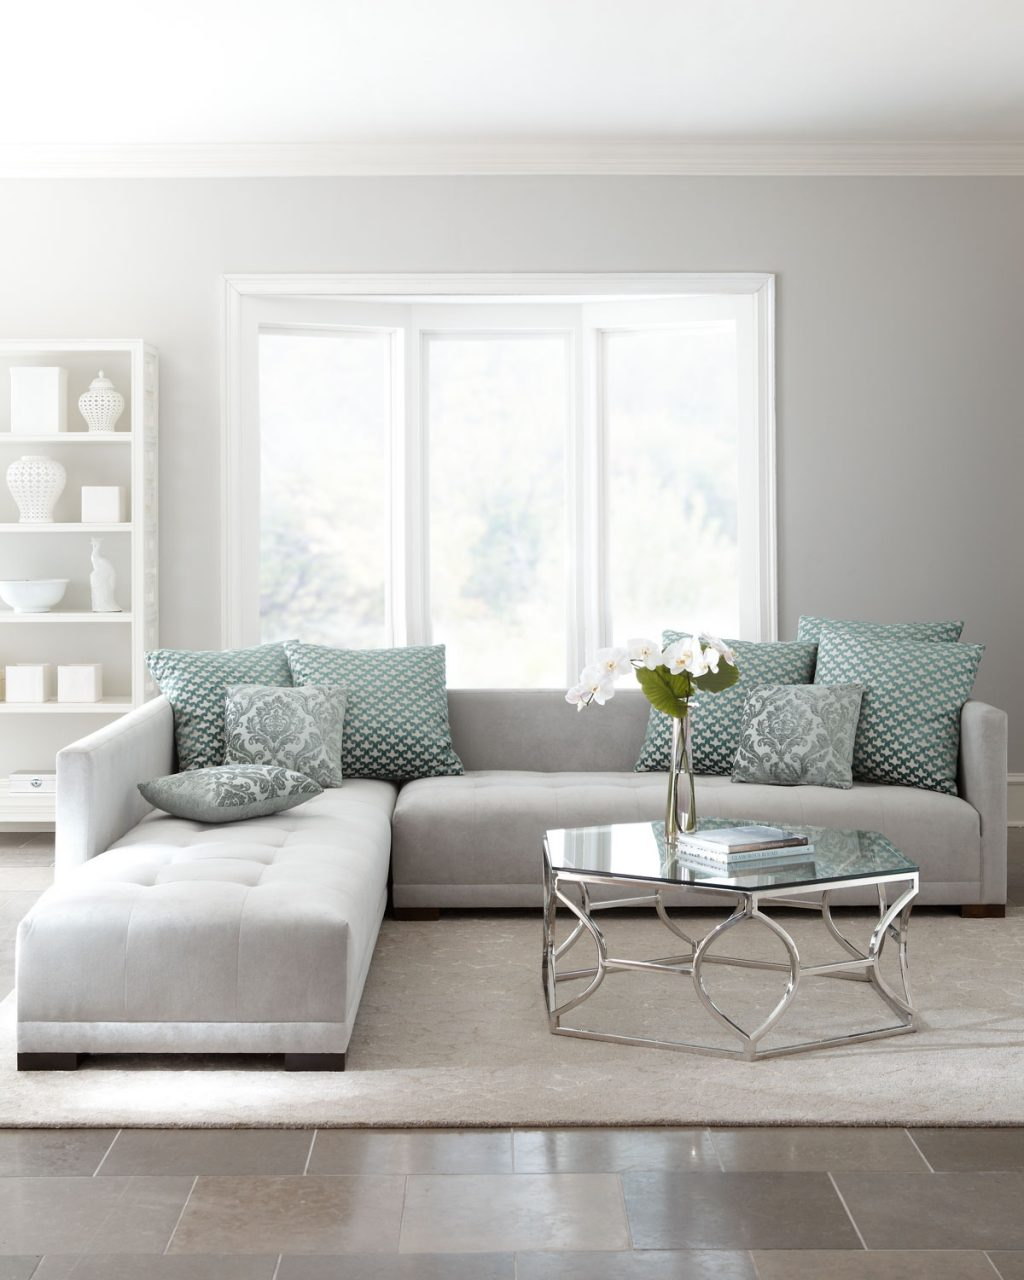 7 Ways To Use Duck Egg Blue To Spruce Up Your Living Room Decor